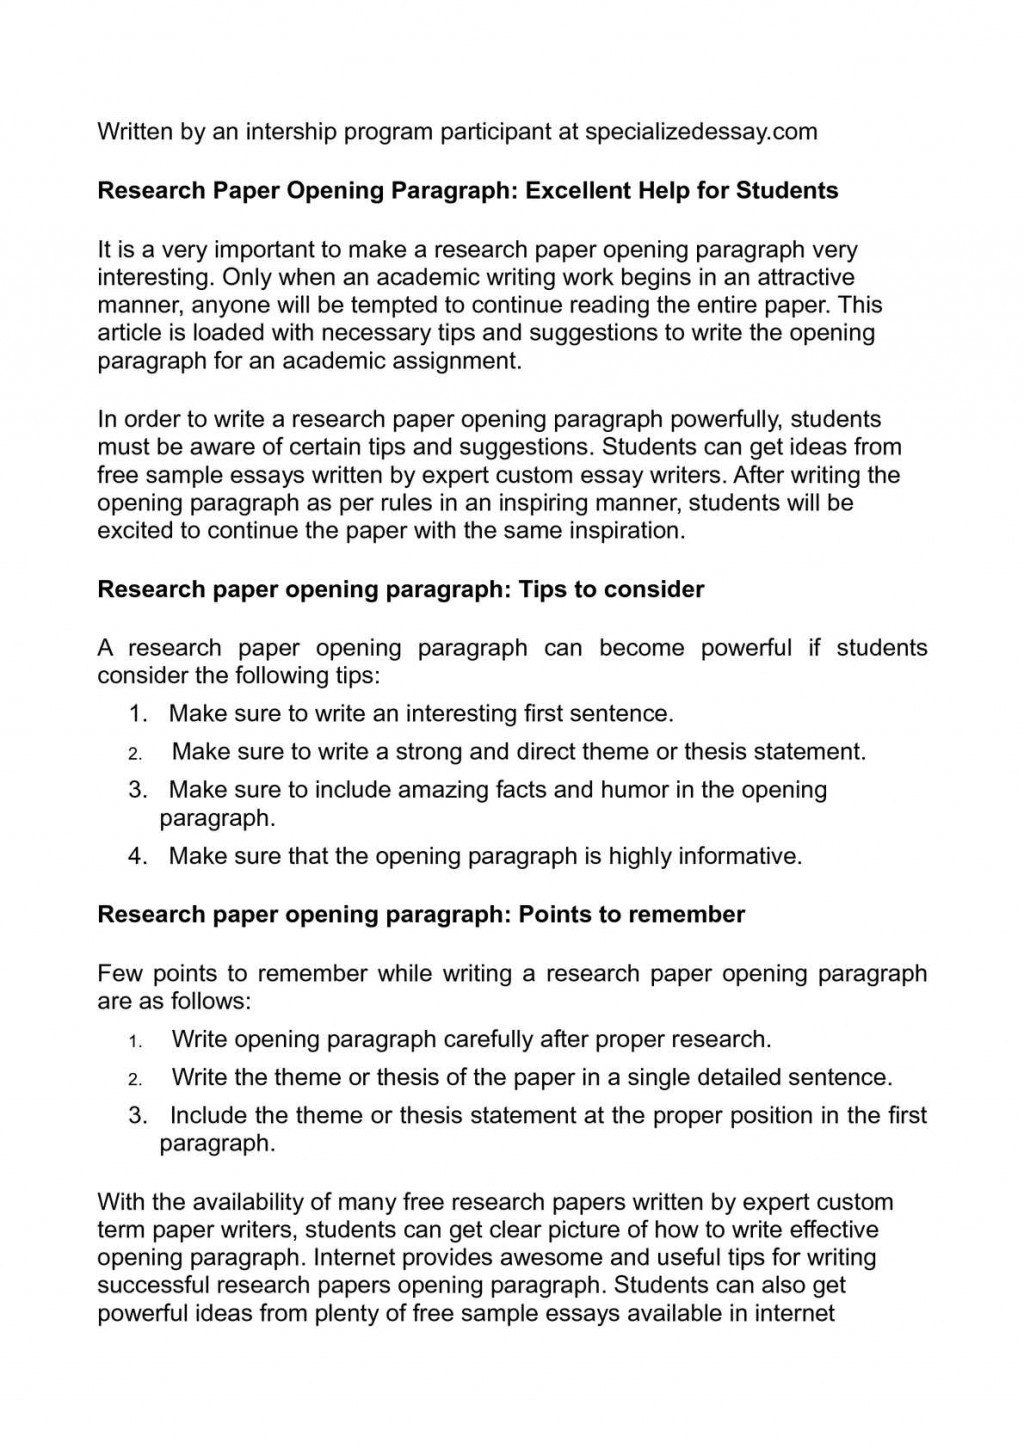 025 P1 Research Paper Free Wonderful Papers Examples Online With Works Cited Website Large